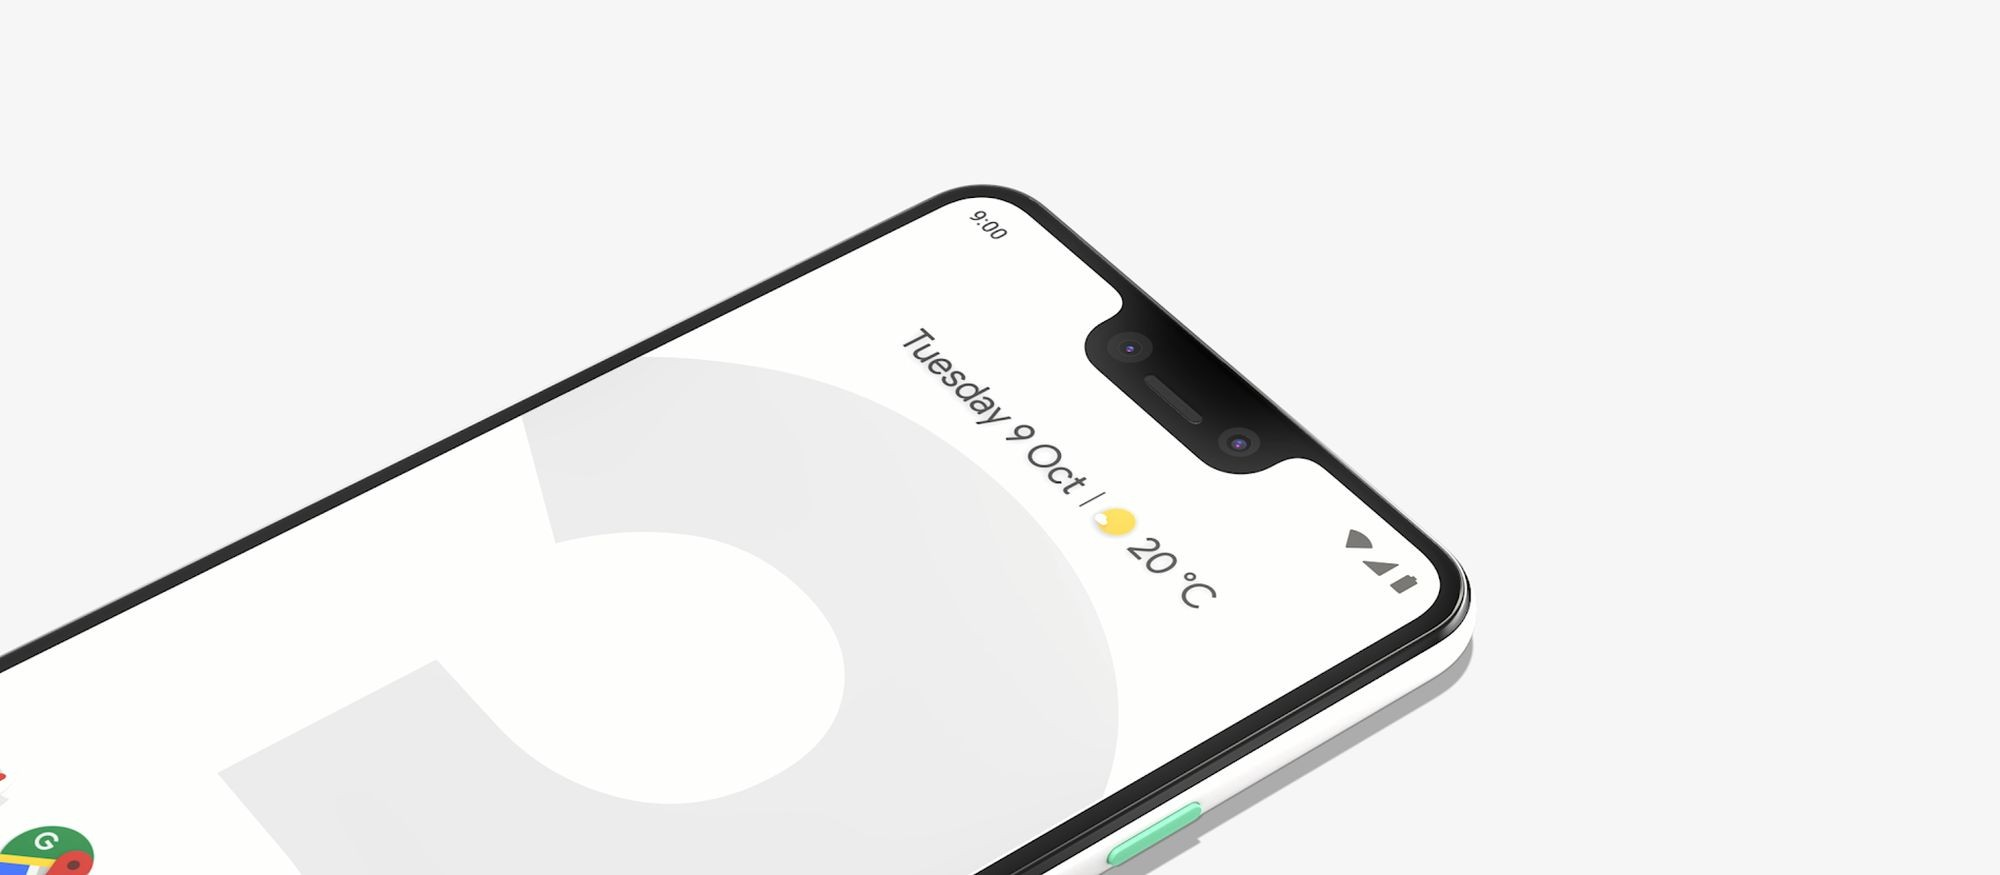 Pixel 3 XL Lite rumored